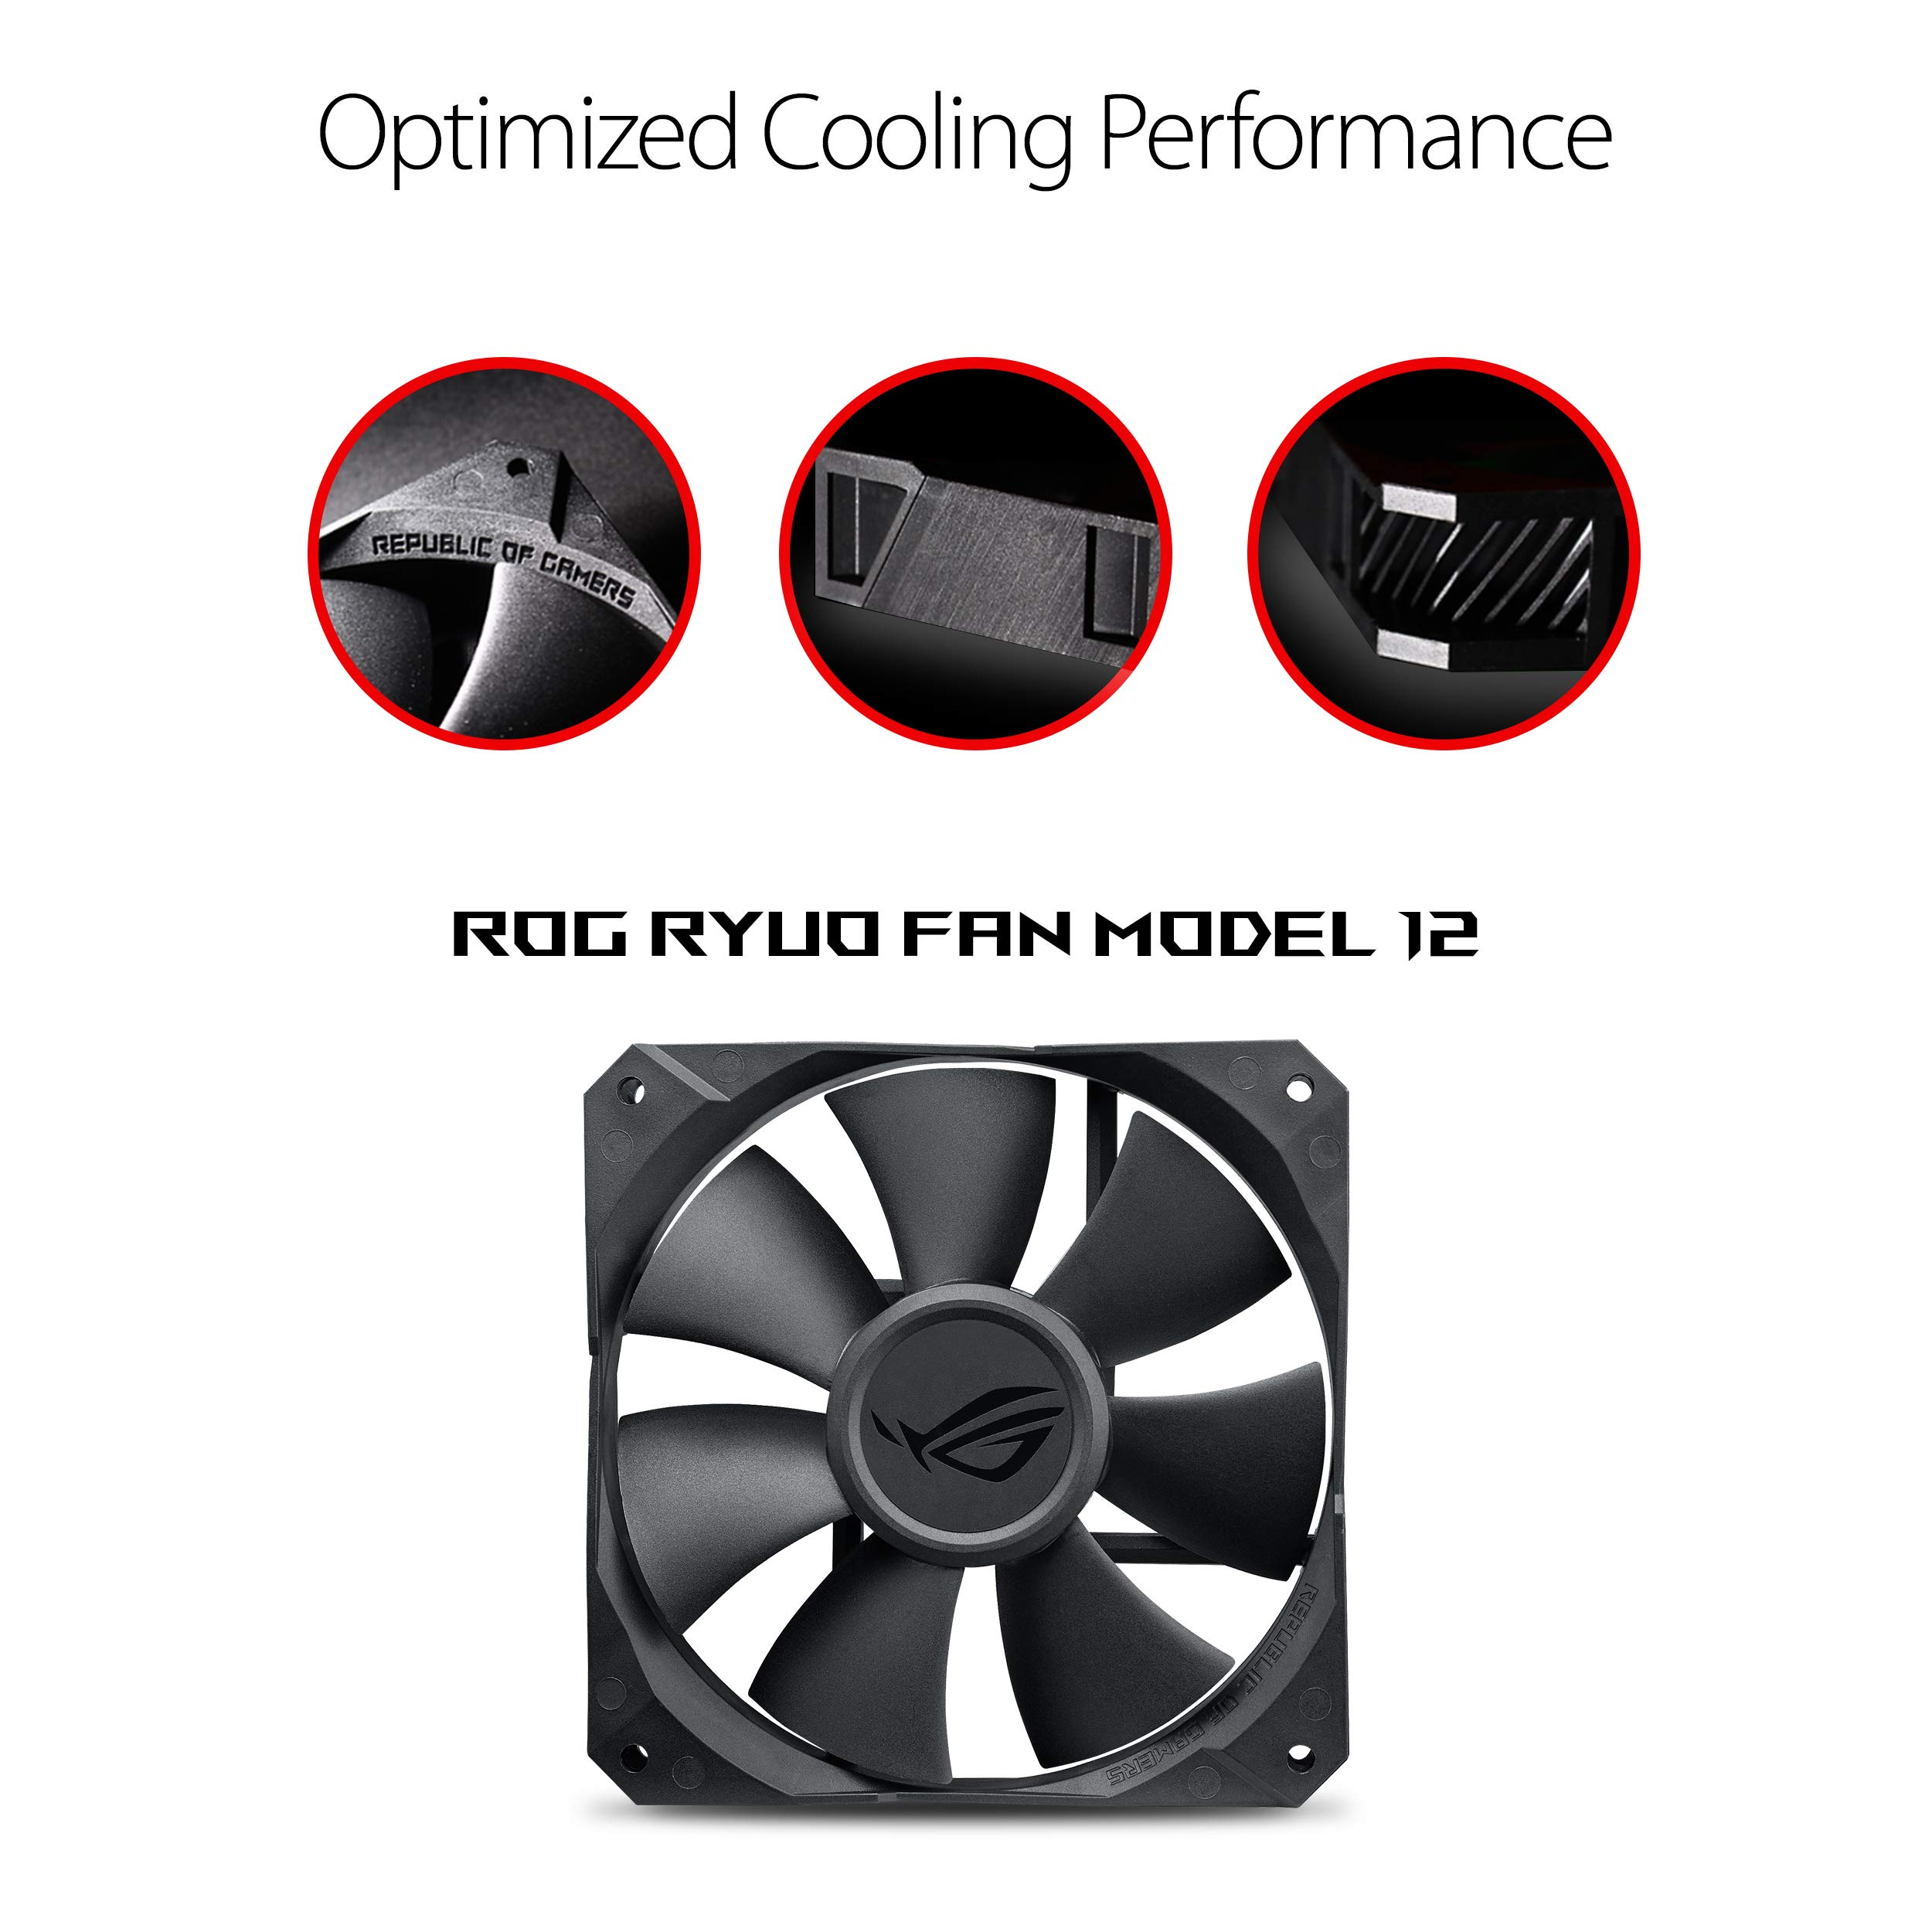 ASUS ROG RYUO 240 RGB AIO Liquid CPU Cooler 240mm Radiator Dual 120mm 4-Pin PWM Fan with OLED Panel & Fan Control 1.77'' by ASUS (Image #3)